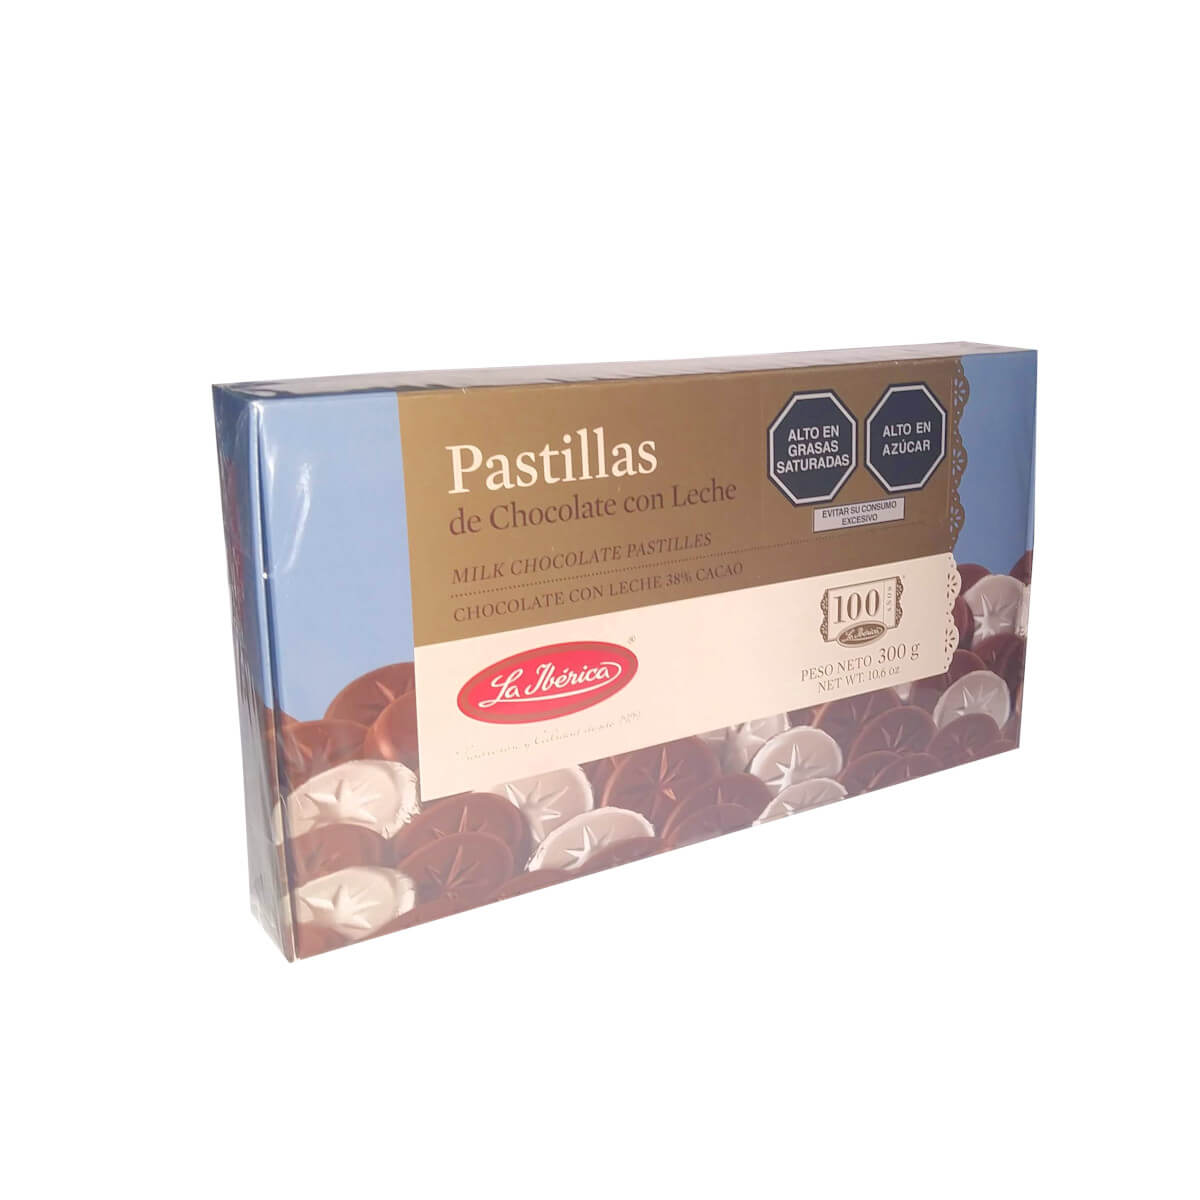 Pastillas de chocolate con leche